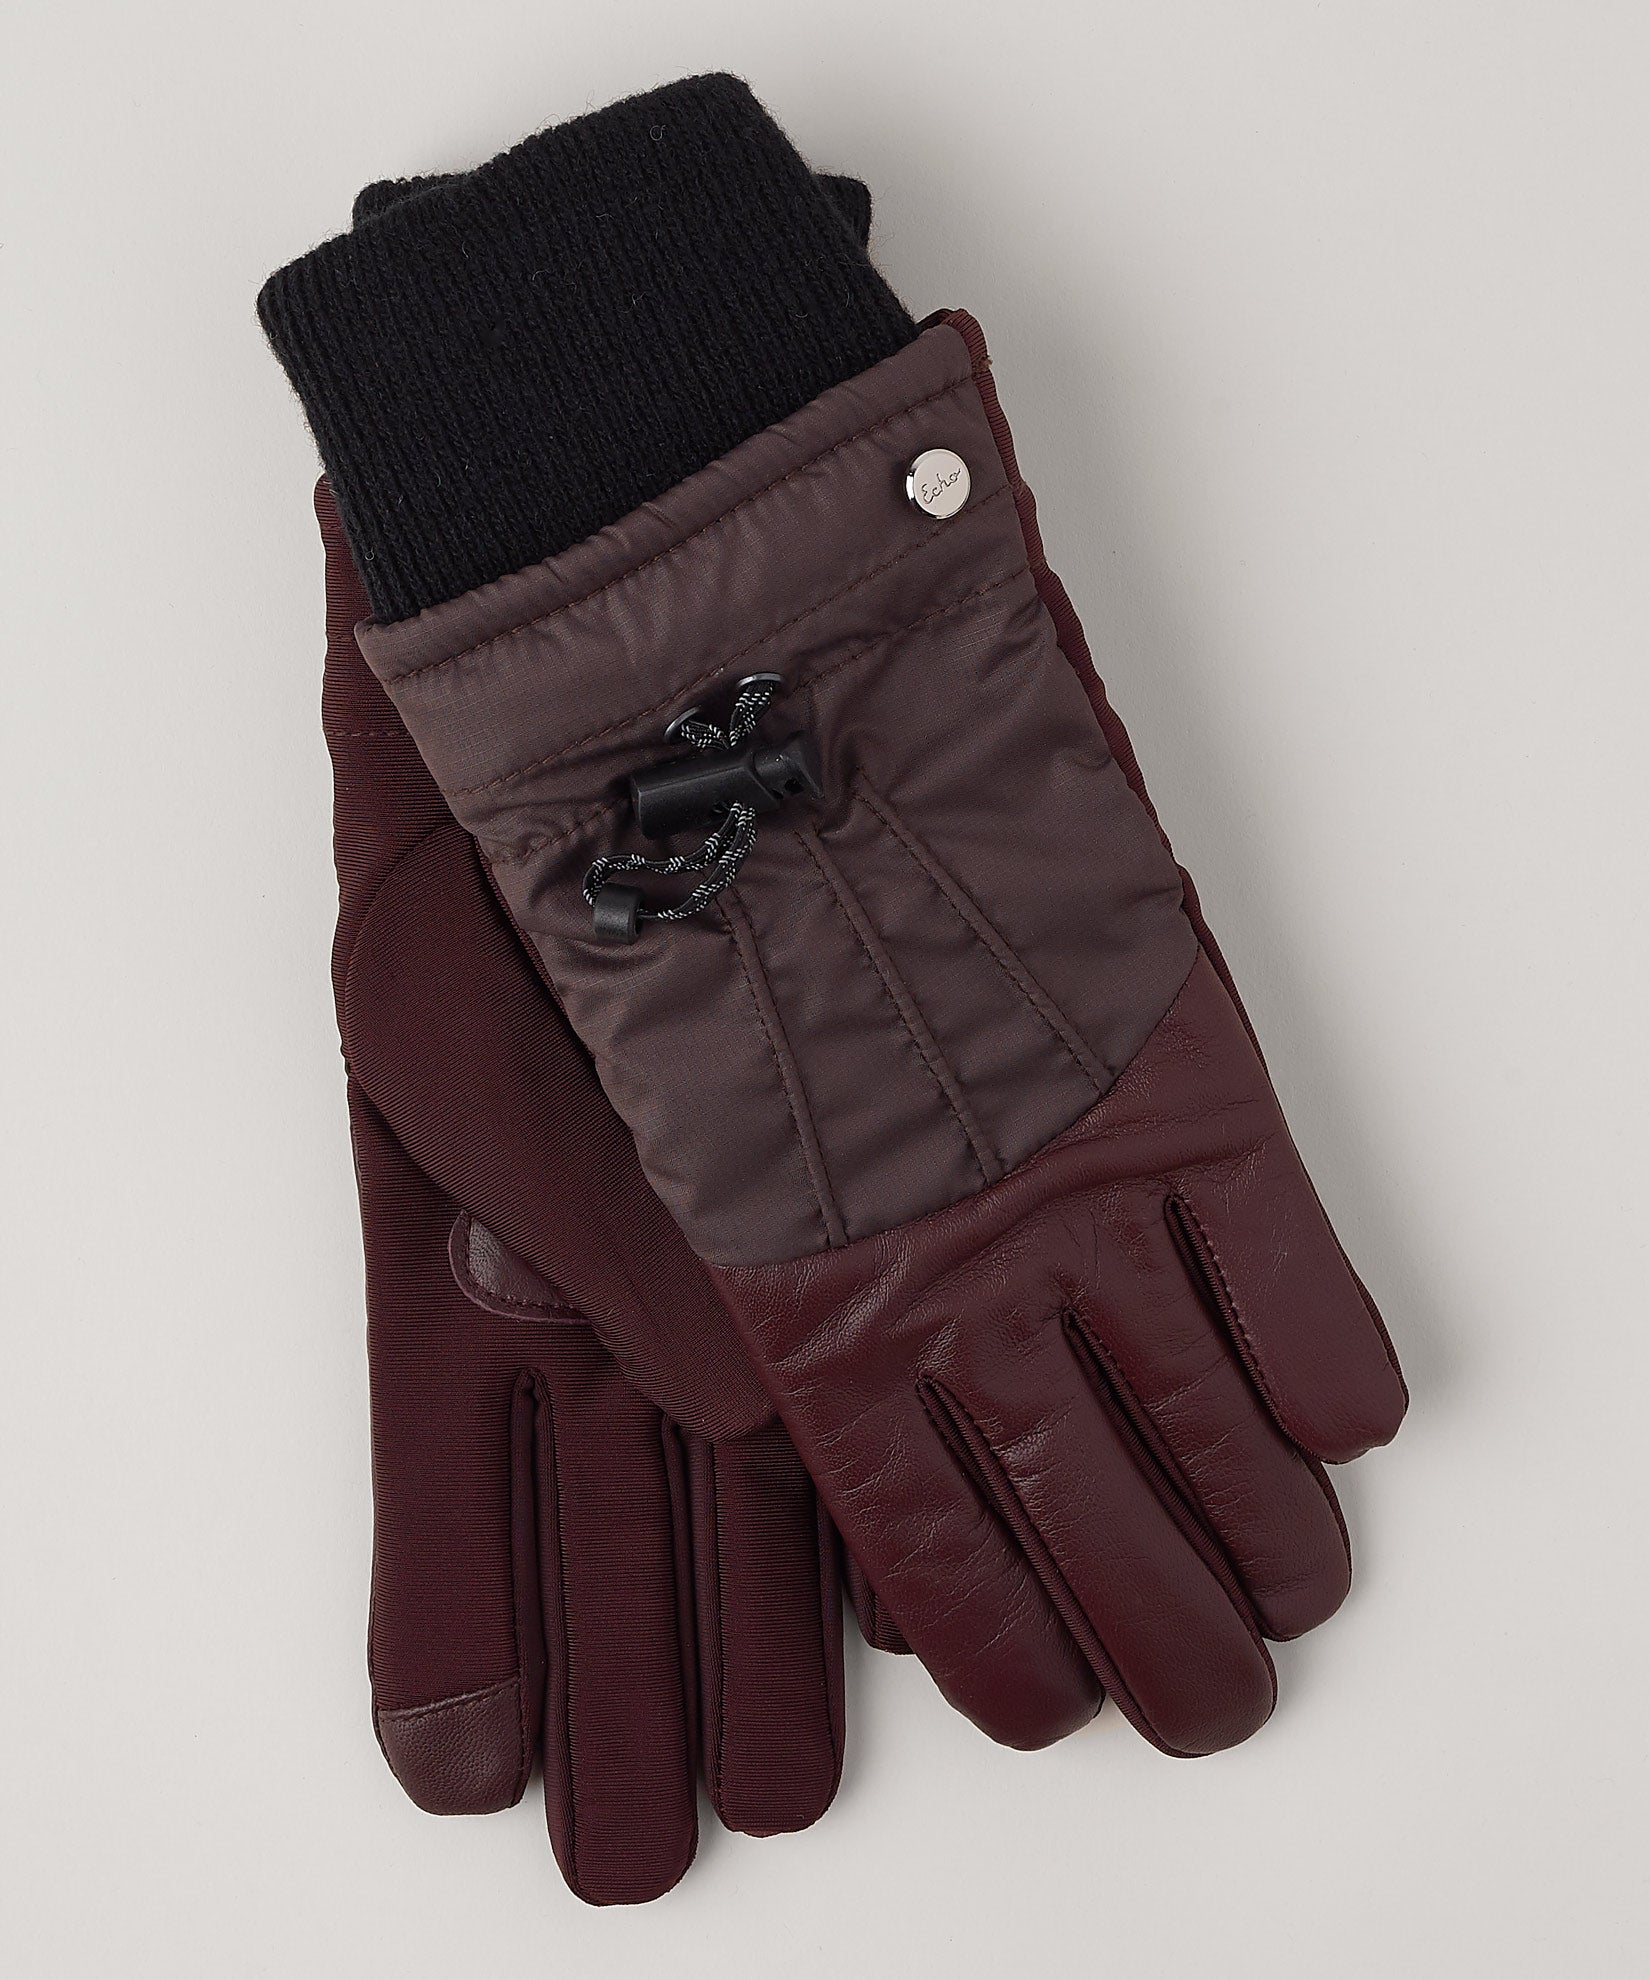 Fig - Warmest Superfit Drawstring Glove